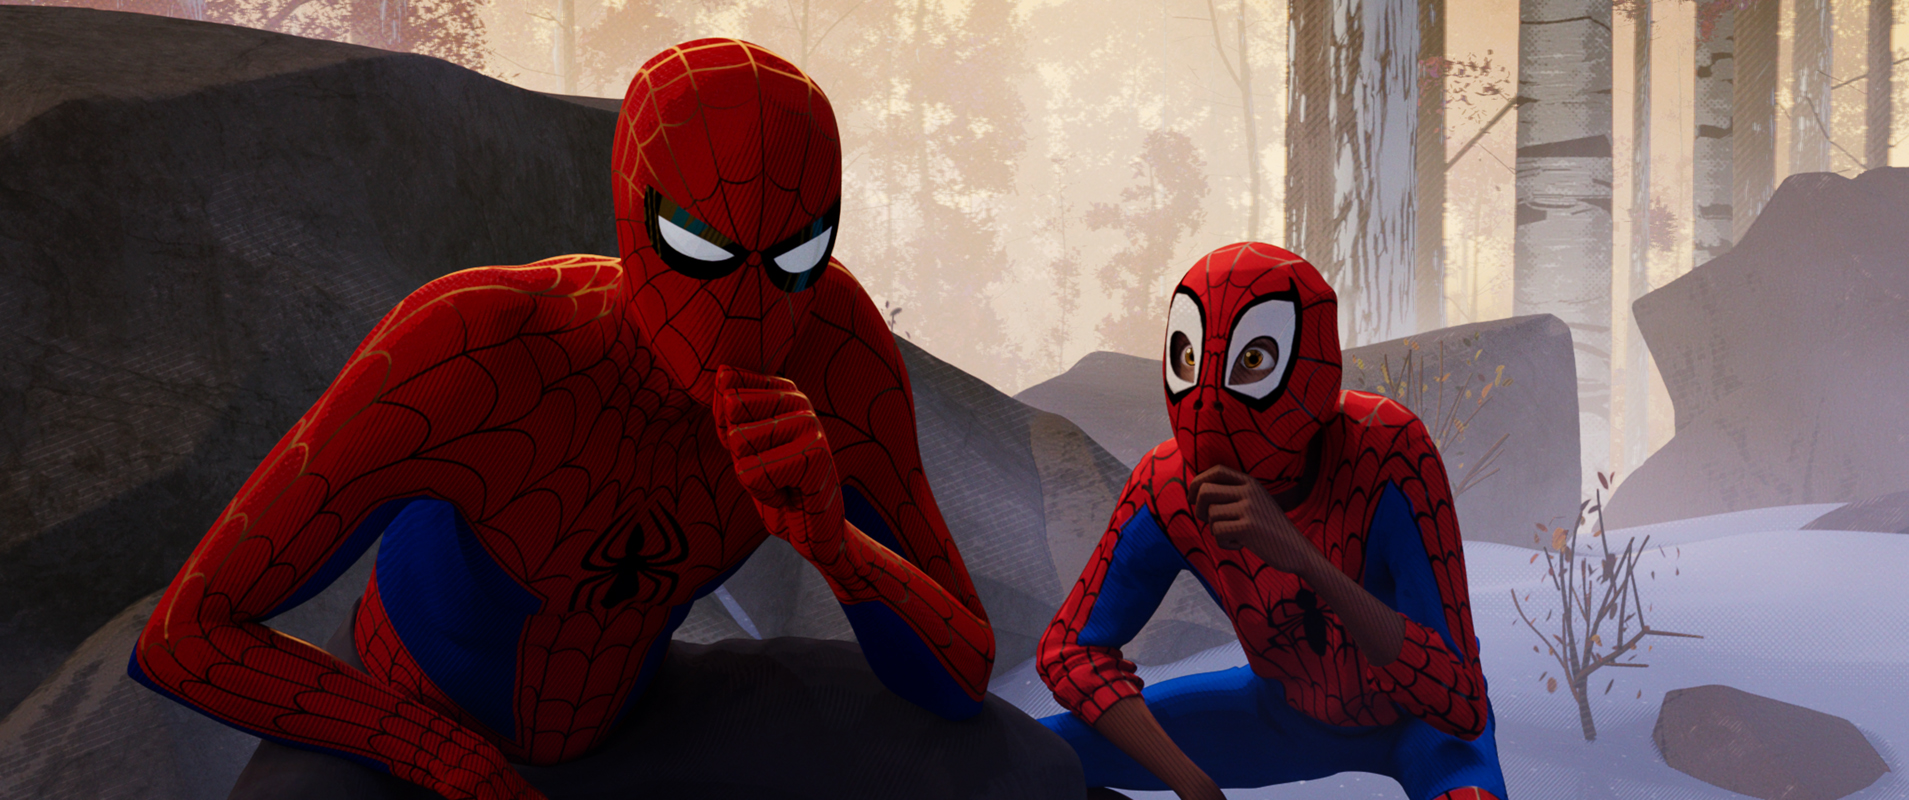 ART OF THE CUT on editing Spider-Man: Into the Spider-Verse 5